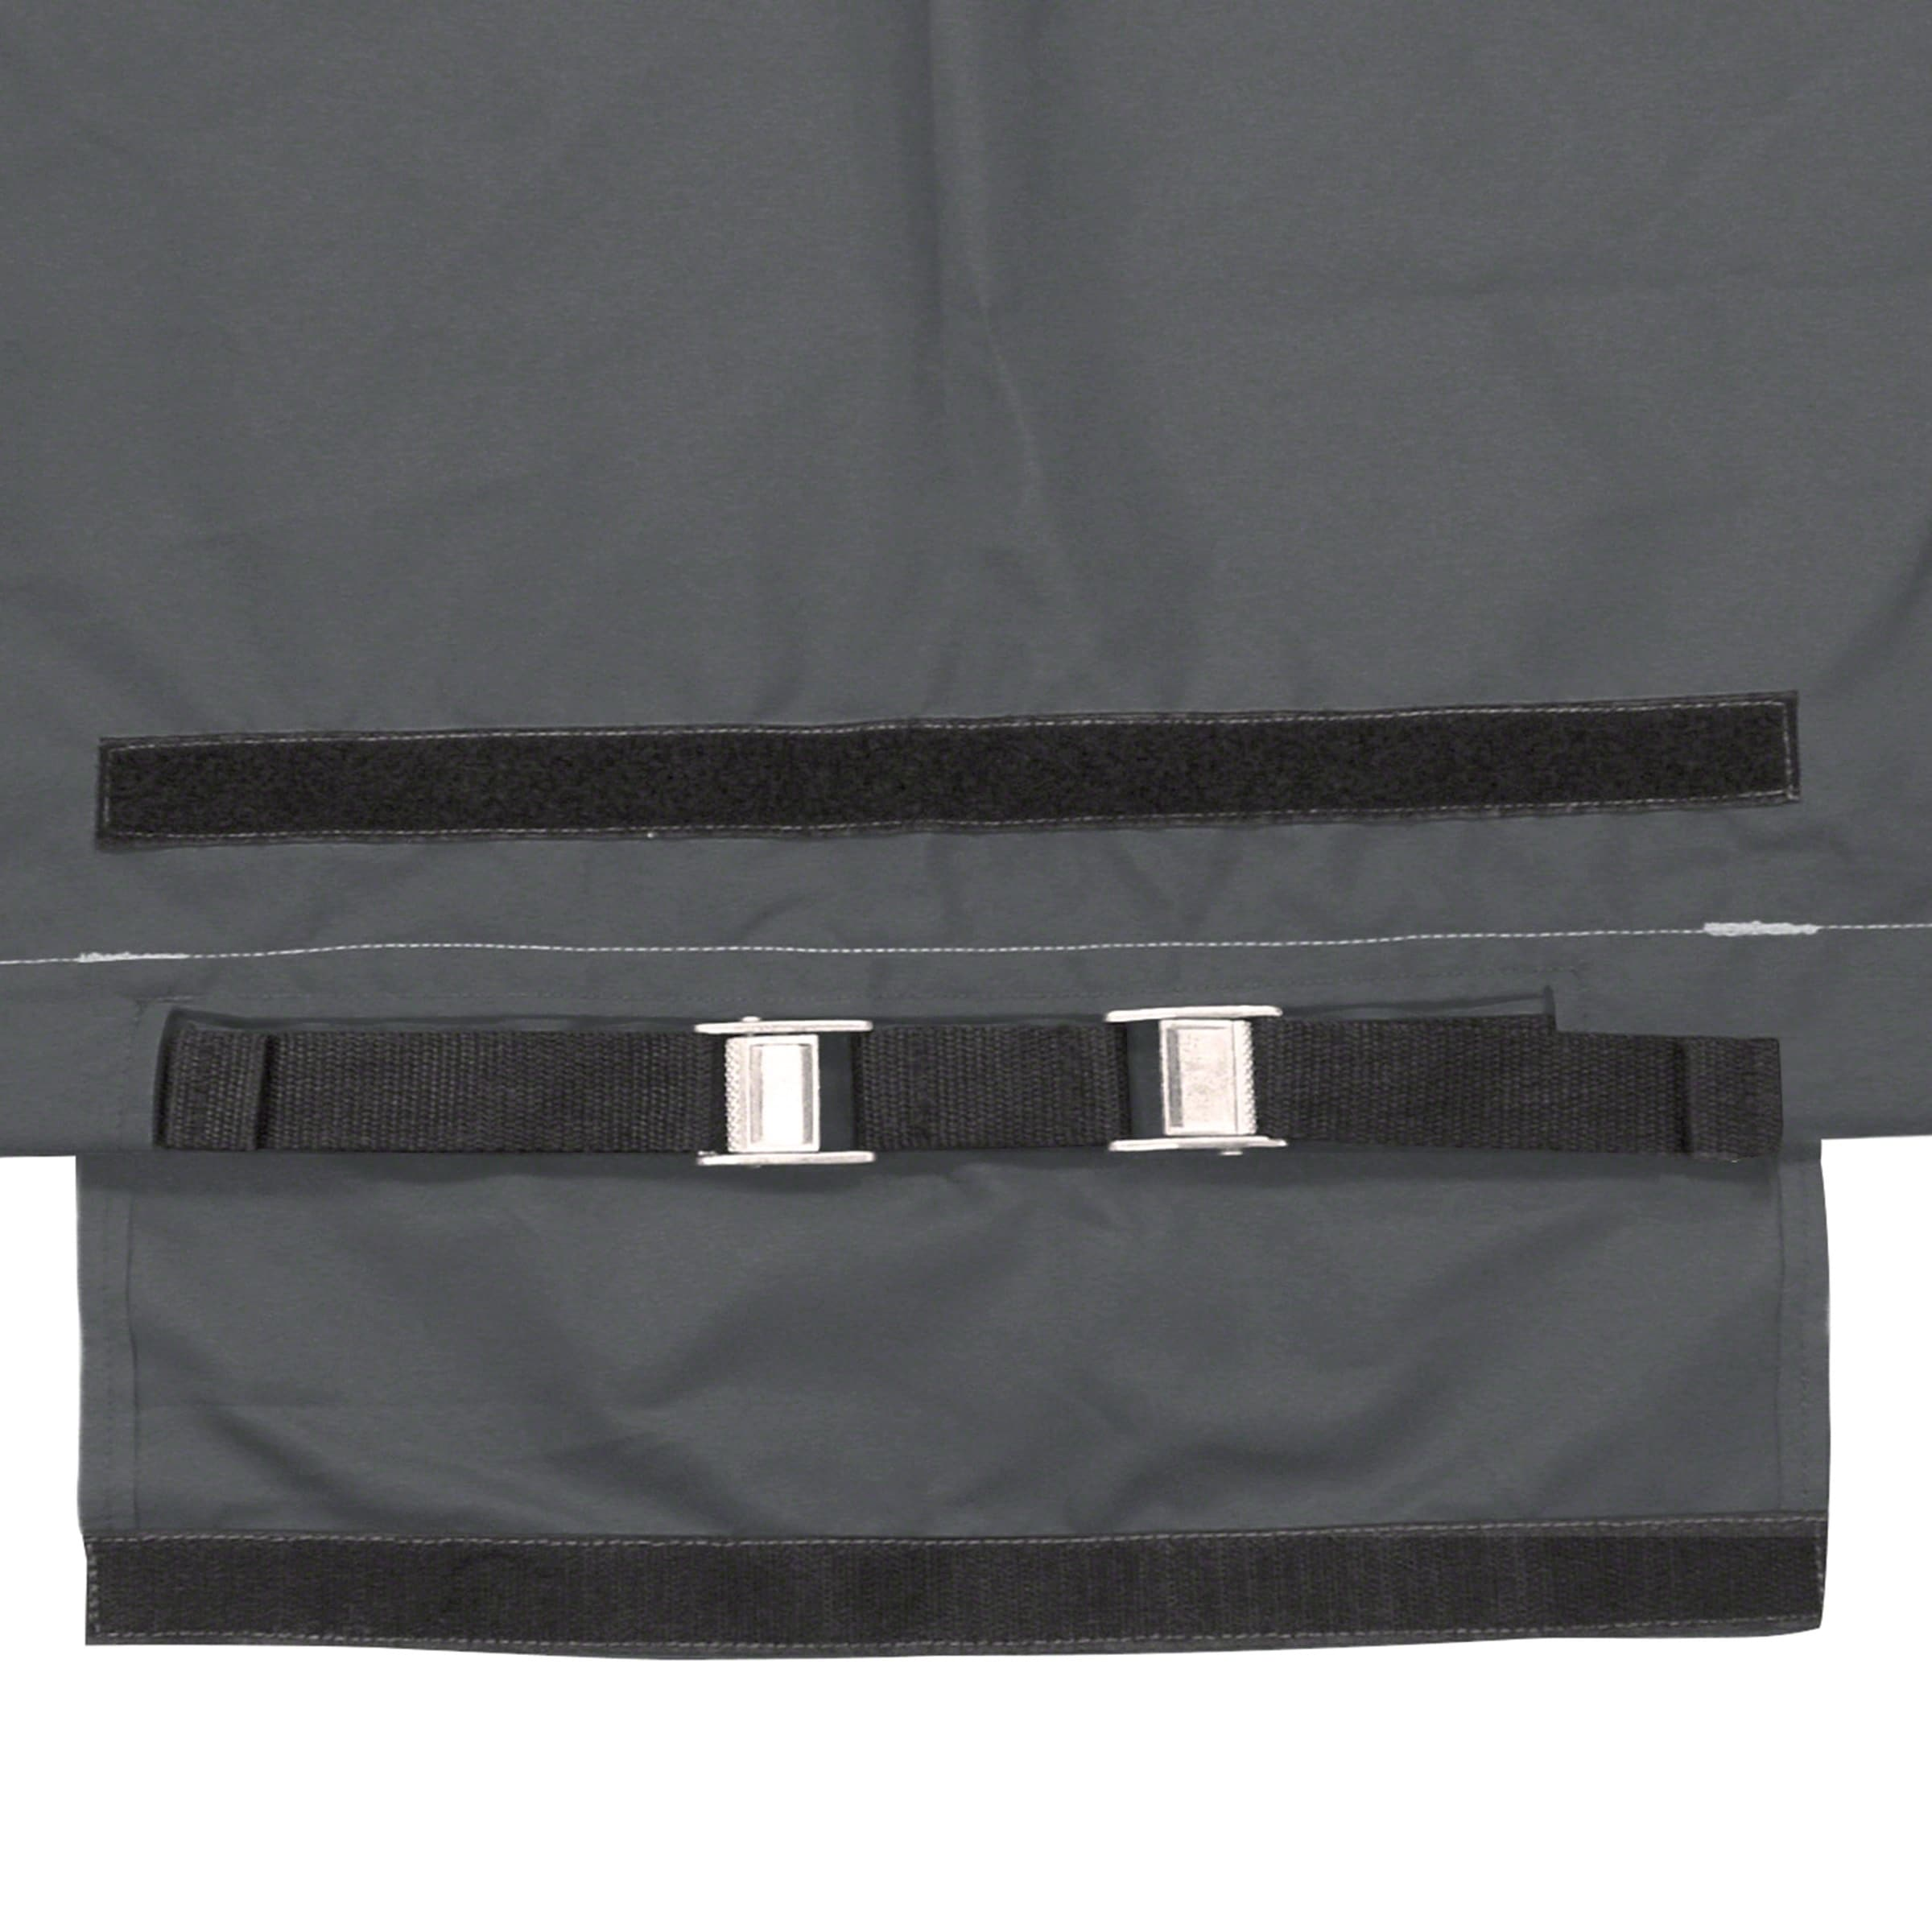 Shop Classic Accessories Orion 83068 Rt Deluxe Boat Cover Model F V